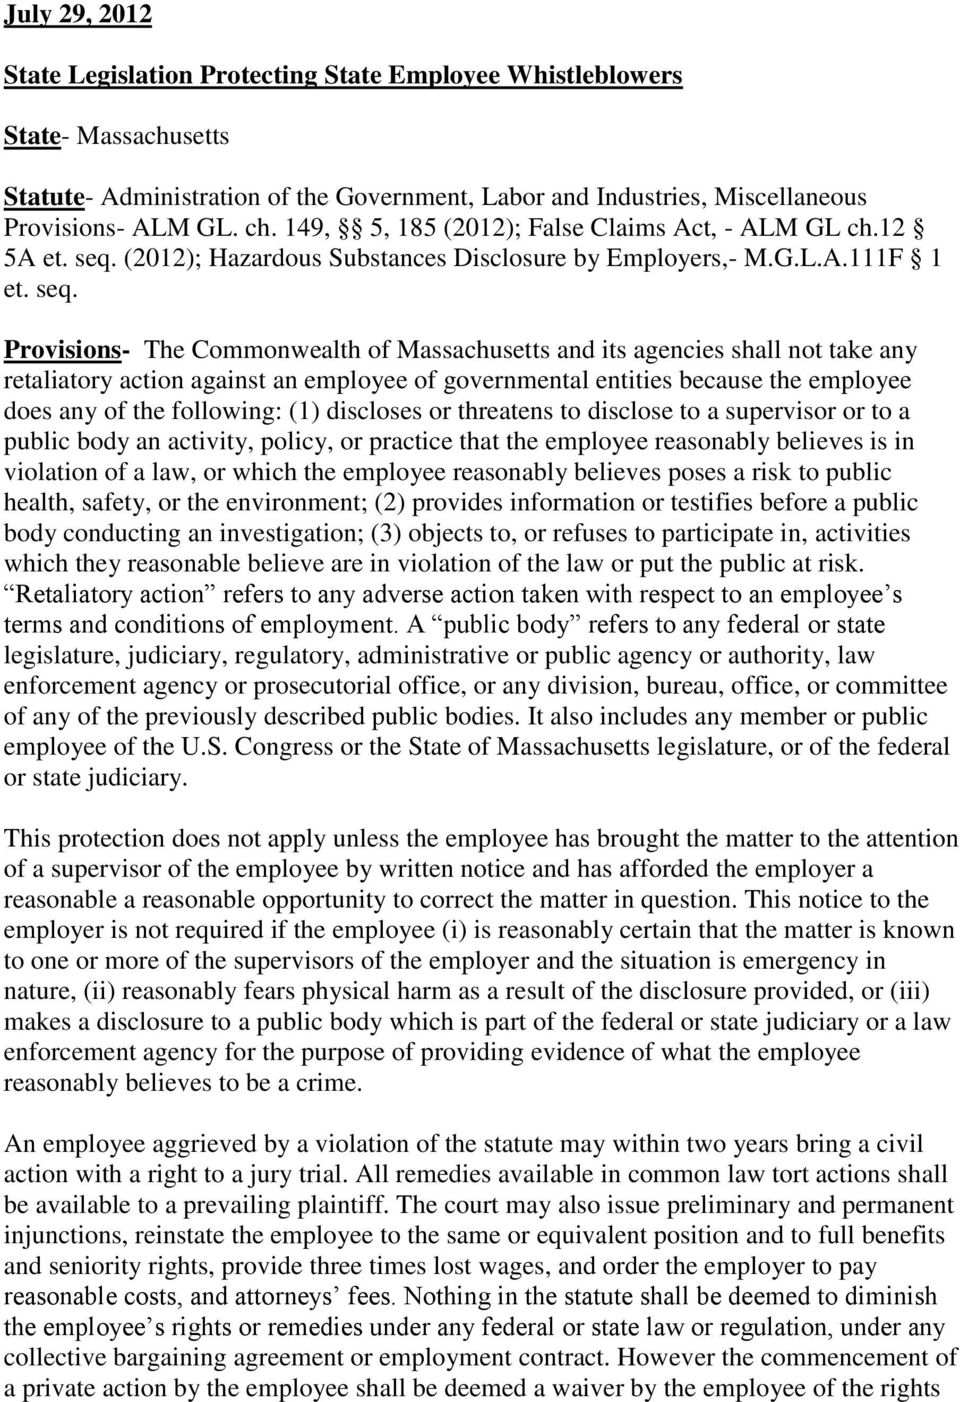 (2012); Hazardous Substances Disclosure by Employers,- M.G.L.A.111F 1 et. seq.